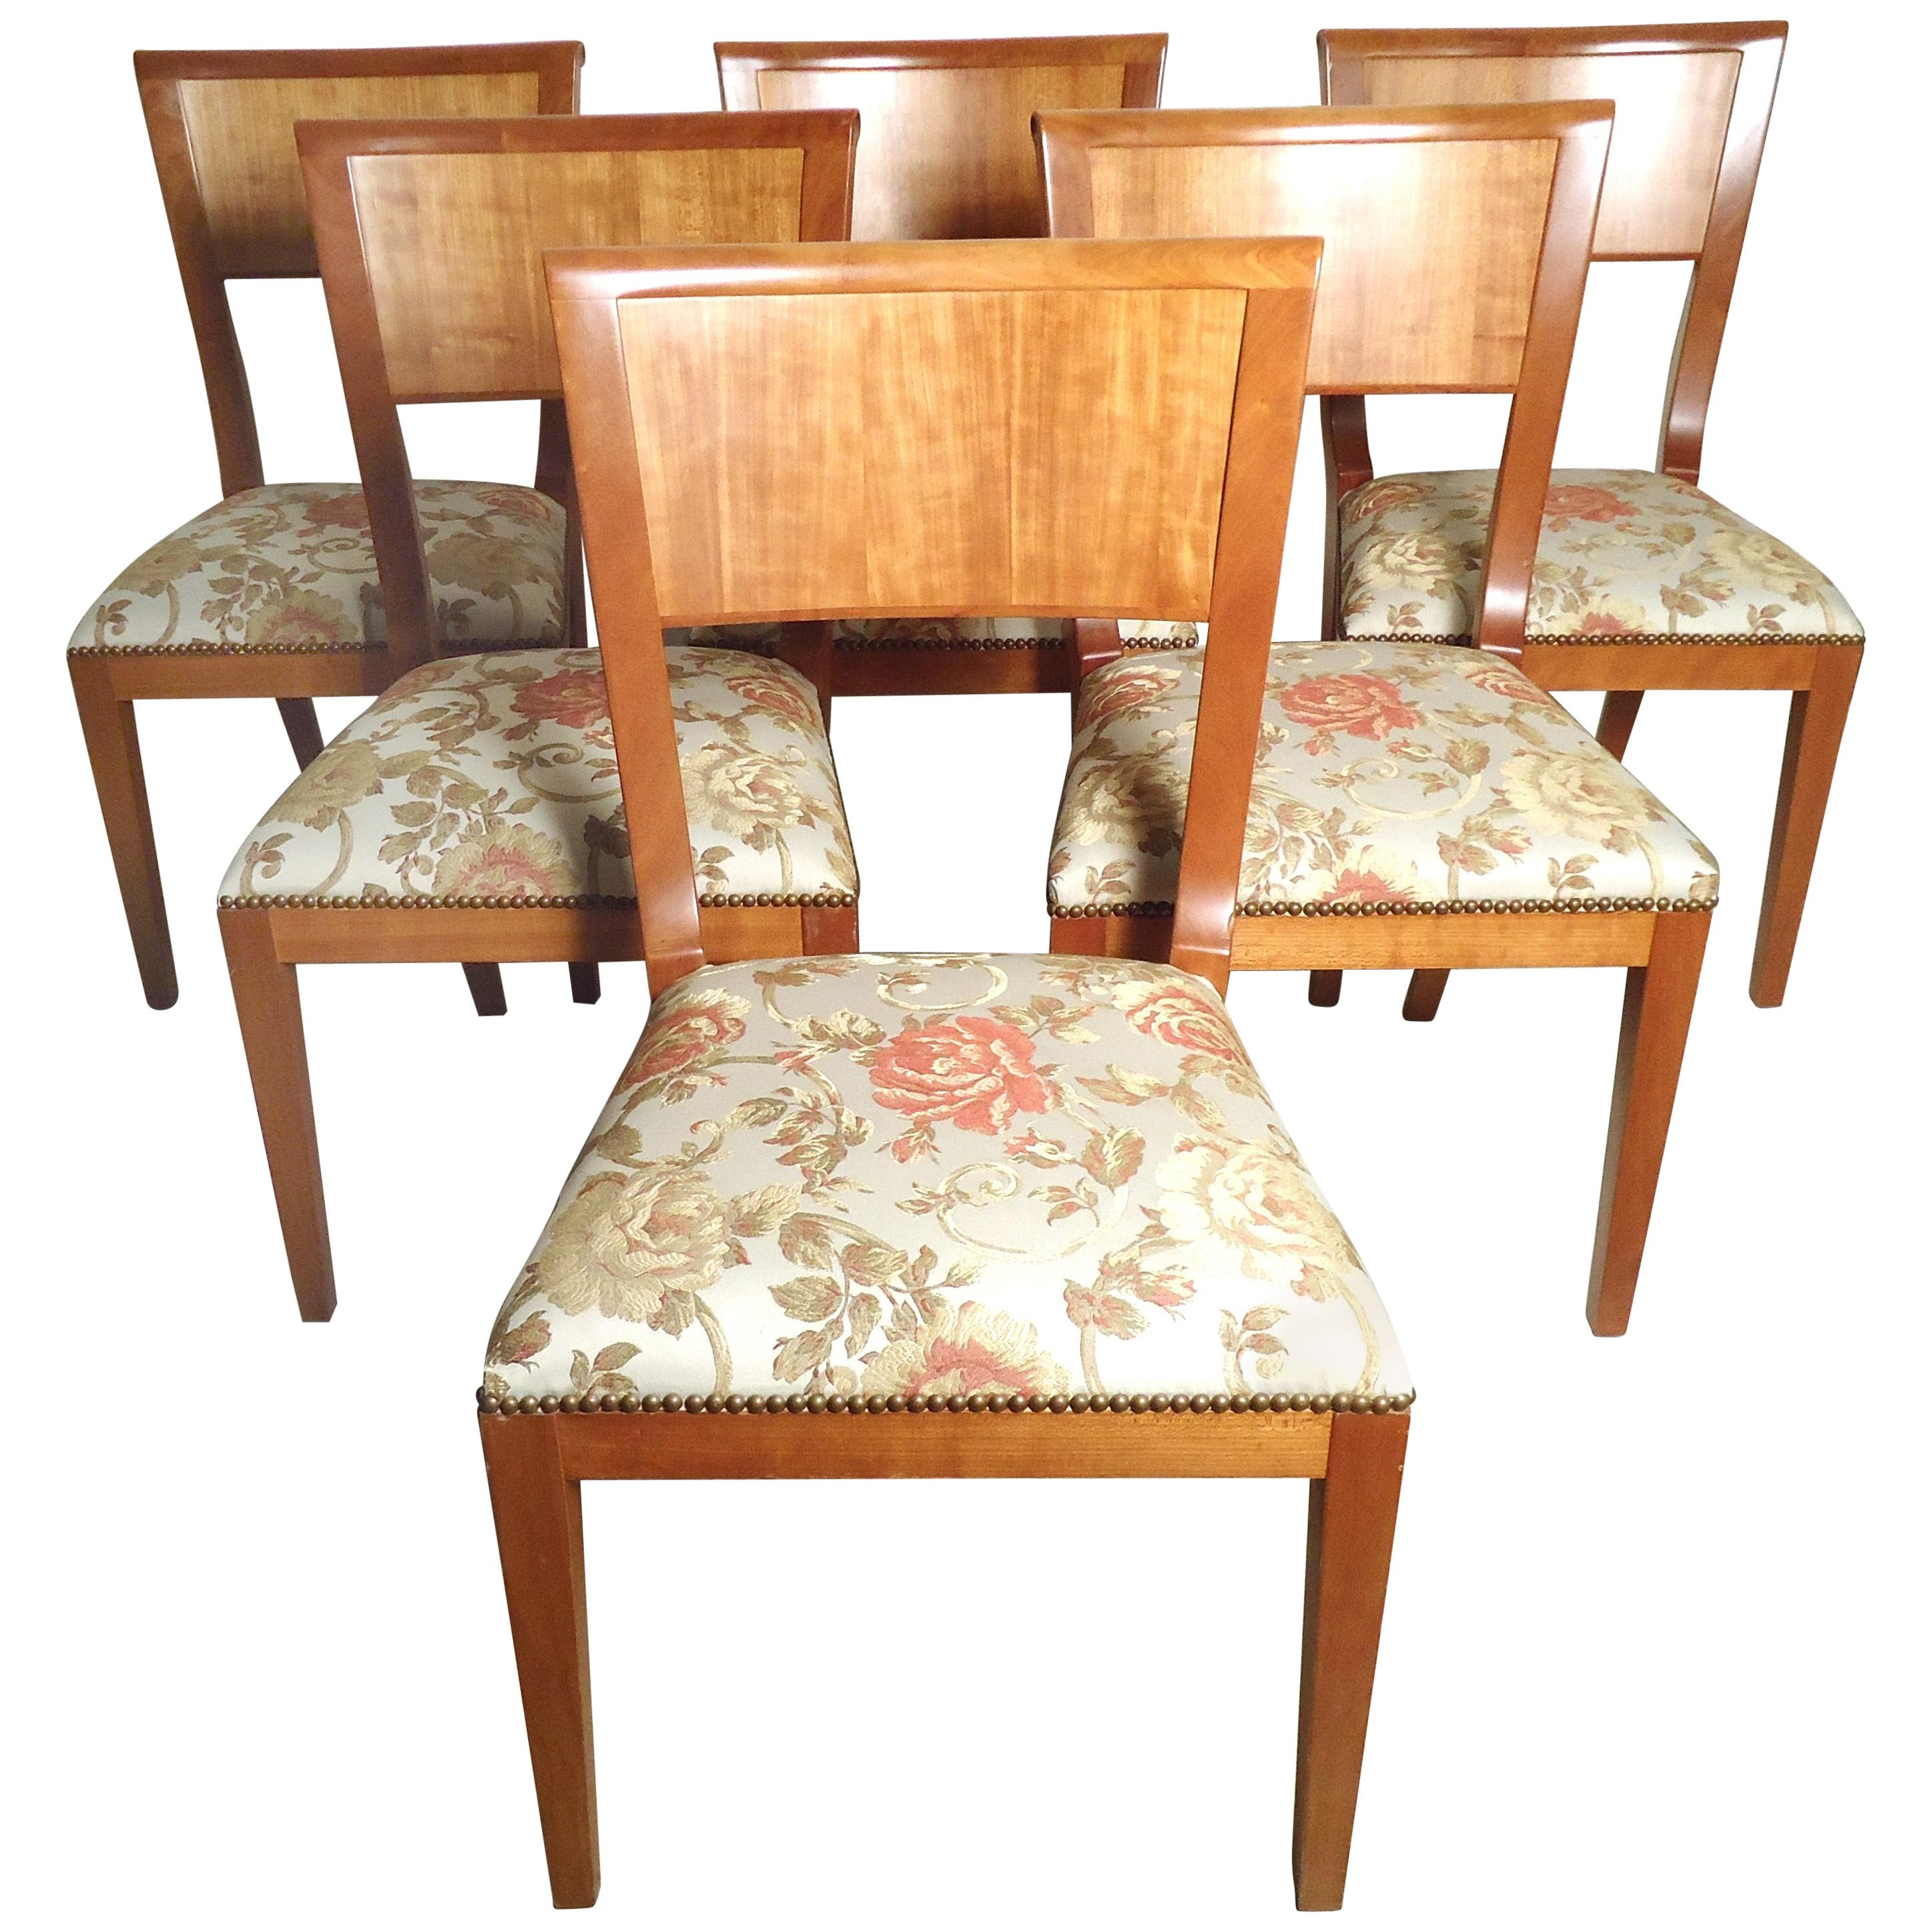 Set of Six Vintage Modern Dining Chairs